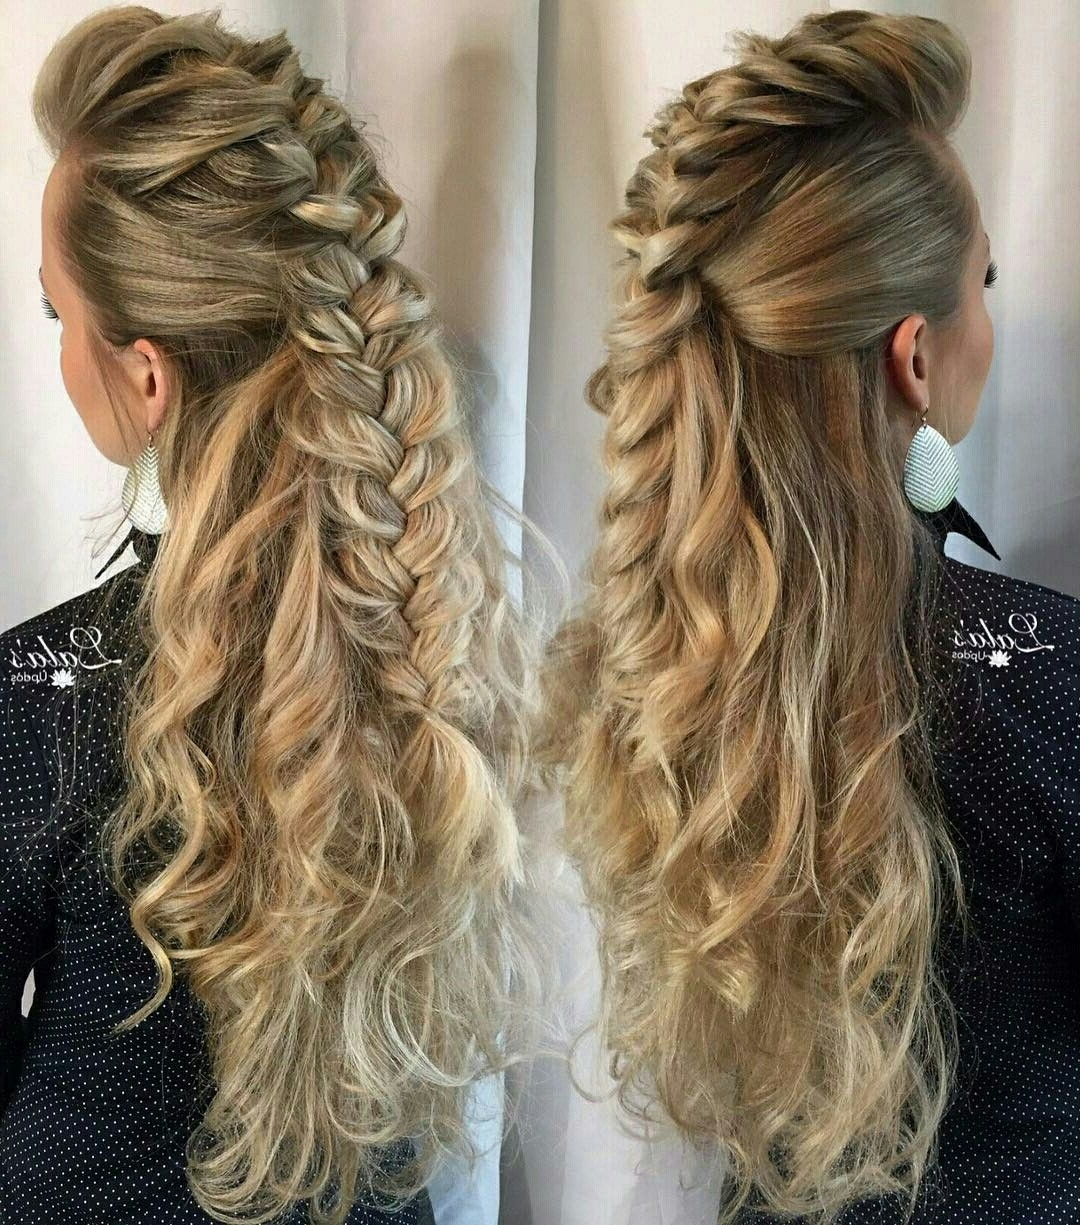 [%Famous Braided Ponytail Mohawk Hairstyles In Mohawk Braid Half Updo | Ideas De Peinado | Moños | Trenzas [Hairdo|Mohawk Braid Half Updo | Ideas De Peinado | Moños | Trenzas [Hairdo Throughout Trendy Braided Ponytail Mohawk Hairstyles%] (View 1 of 20)